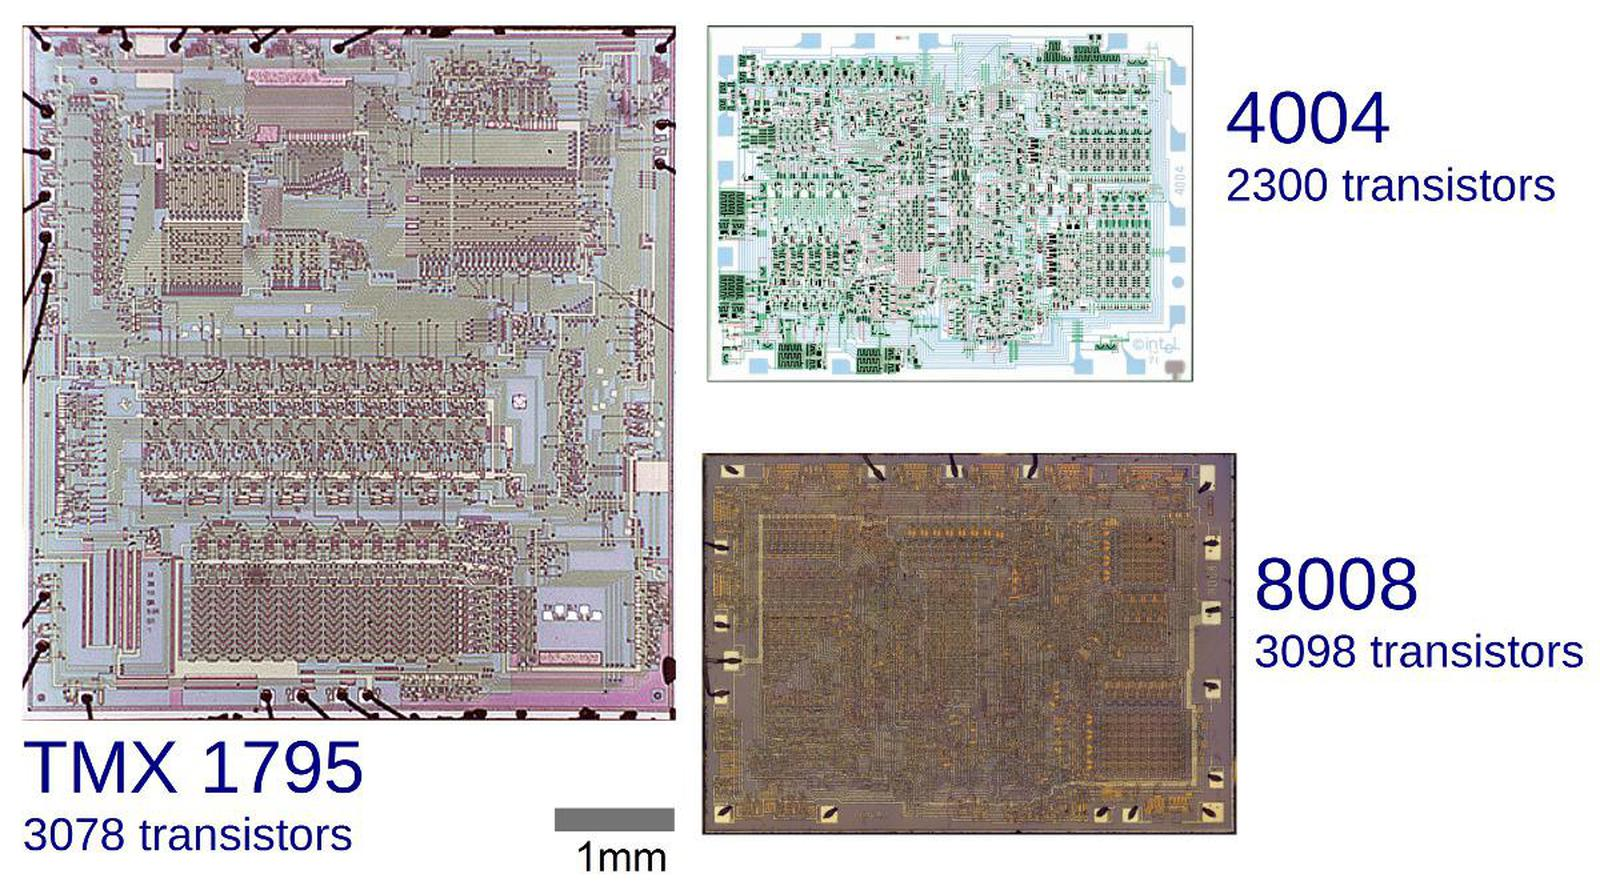 Comparative die sizes of the TMX 1795, 4004 and 8008 microprocessors. Note that the 4004 and 8008 are nearly the same size, while the TMX 1795 is more than twice as large. The top third of the TMX 1795 is instruction decoding and control logic, the middle is the 8-bit ALU, and the bottom is storage (stack and registers). TMX 1795 die photo courtesy of Computer History Museum.